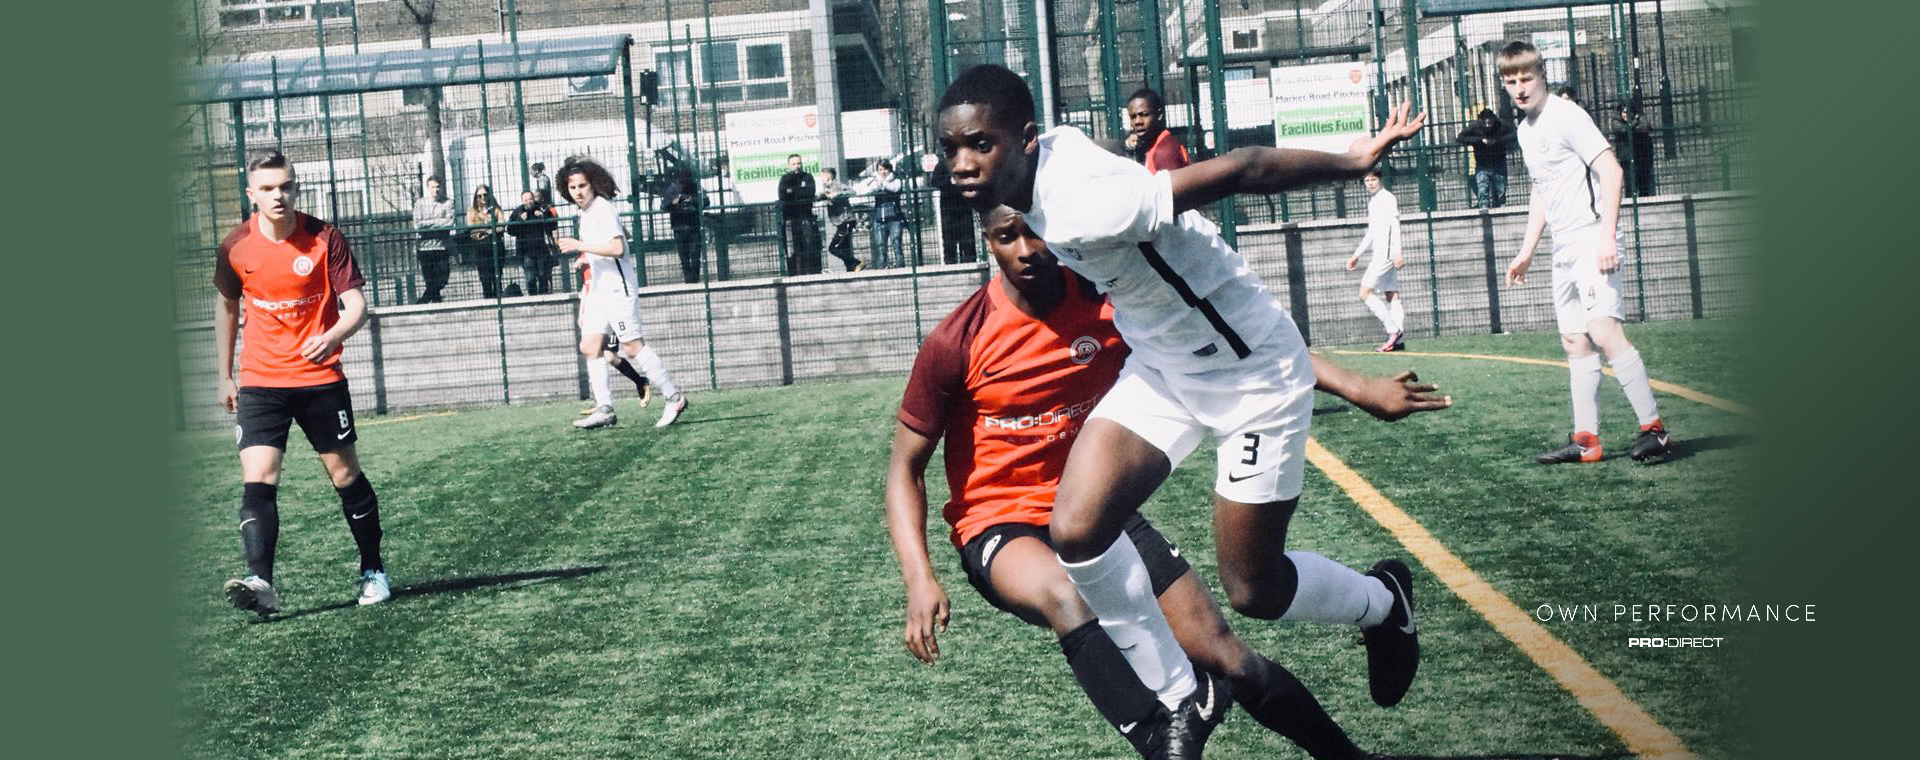 Players compete in trials at Pro:Direct London Central, Islington